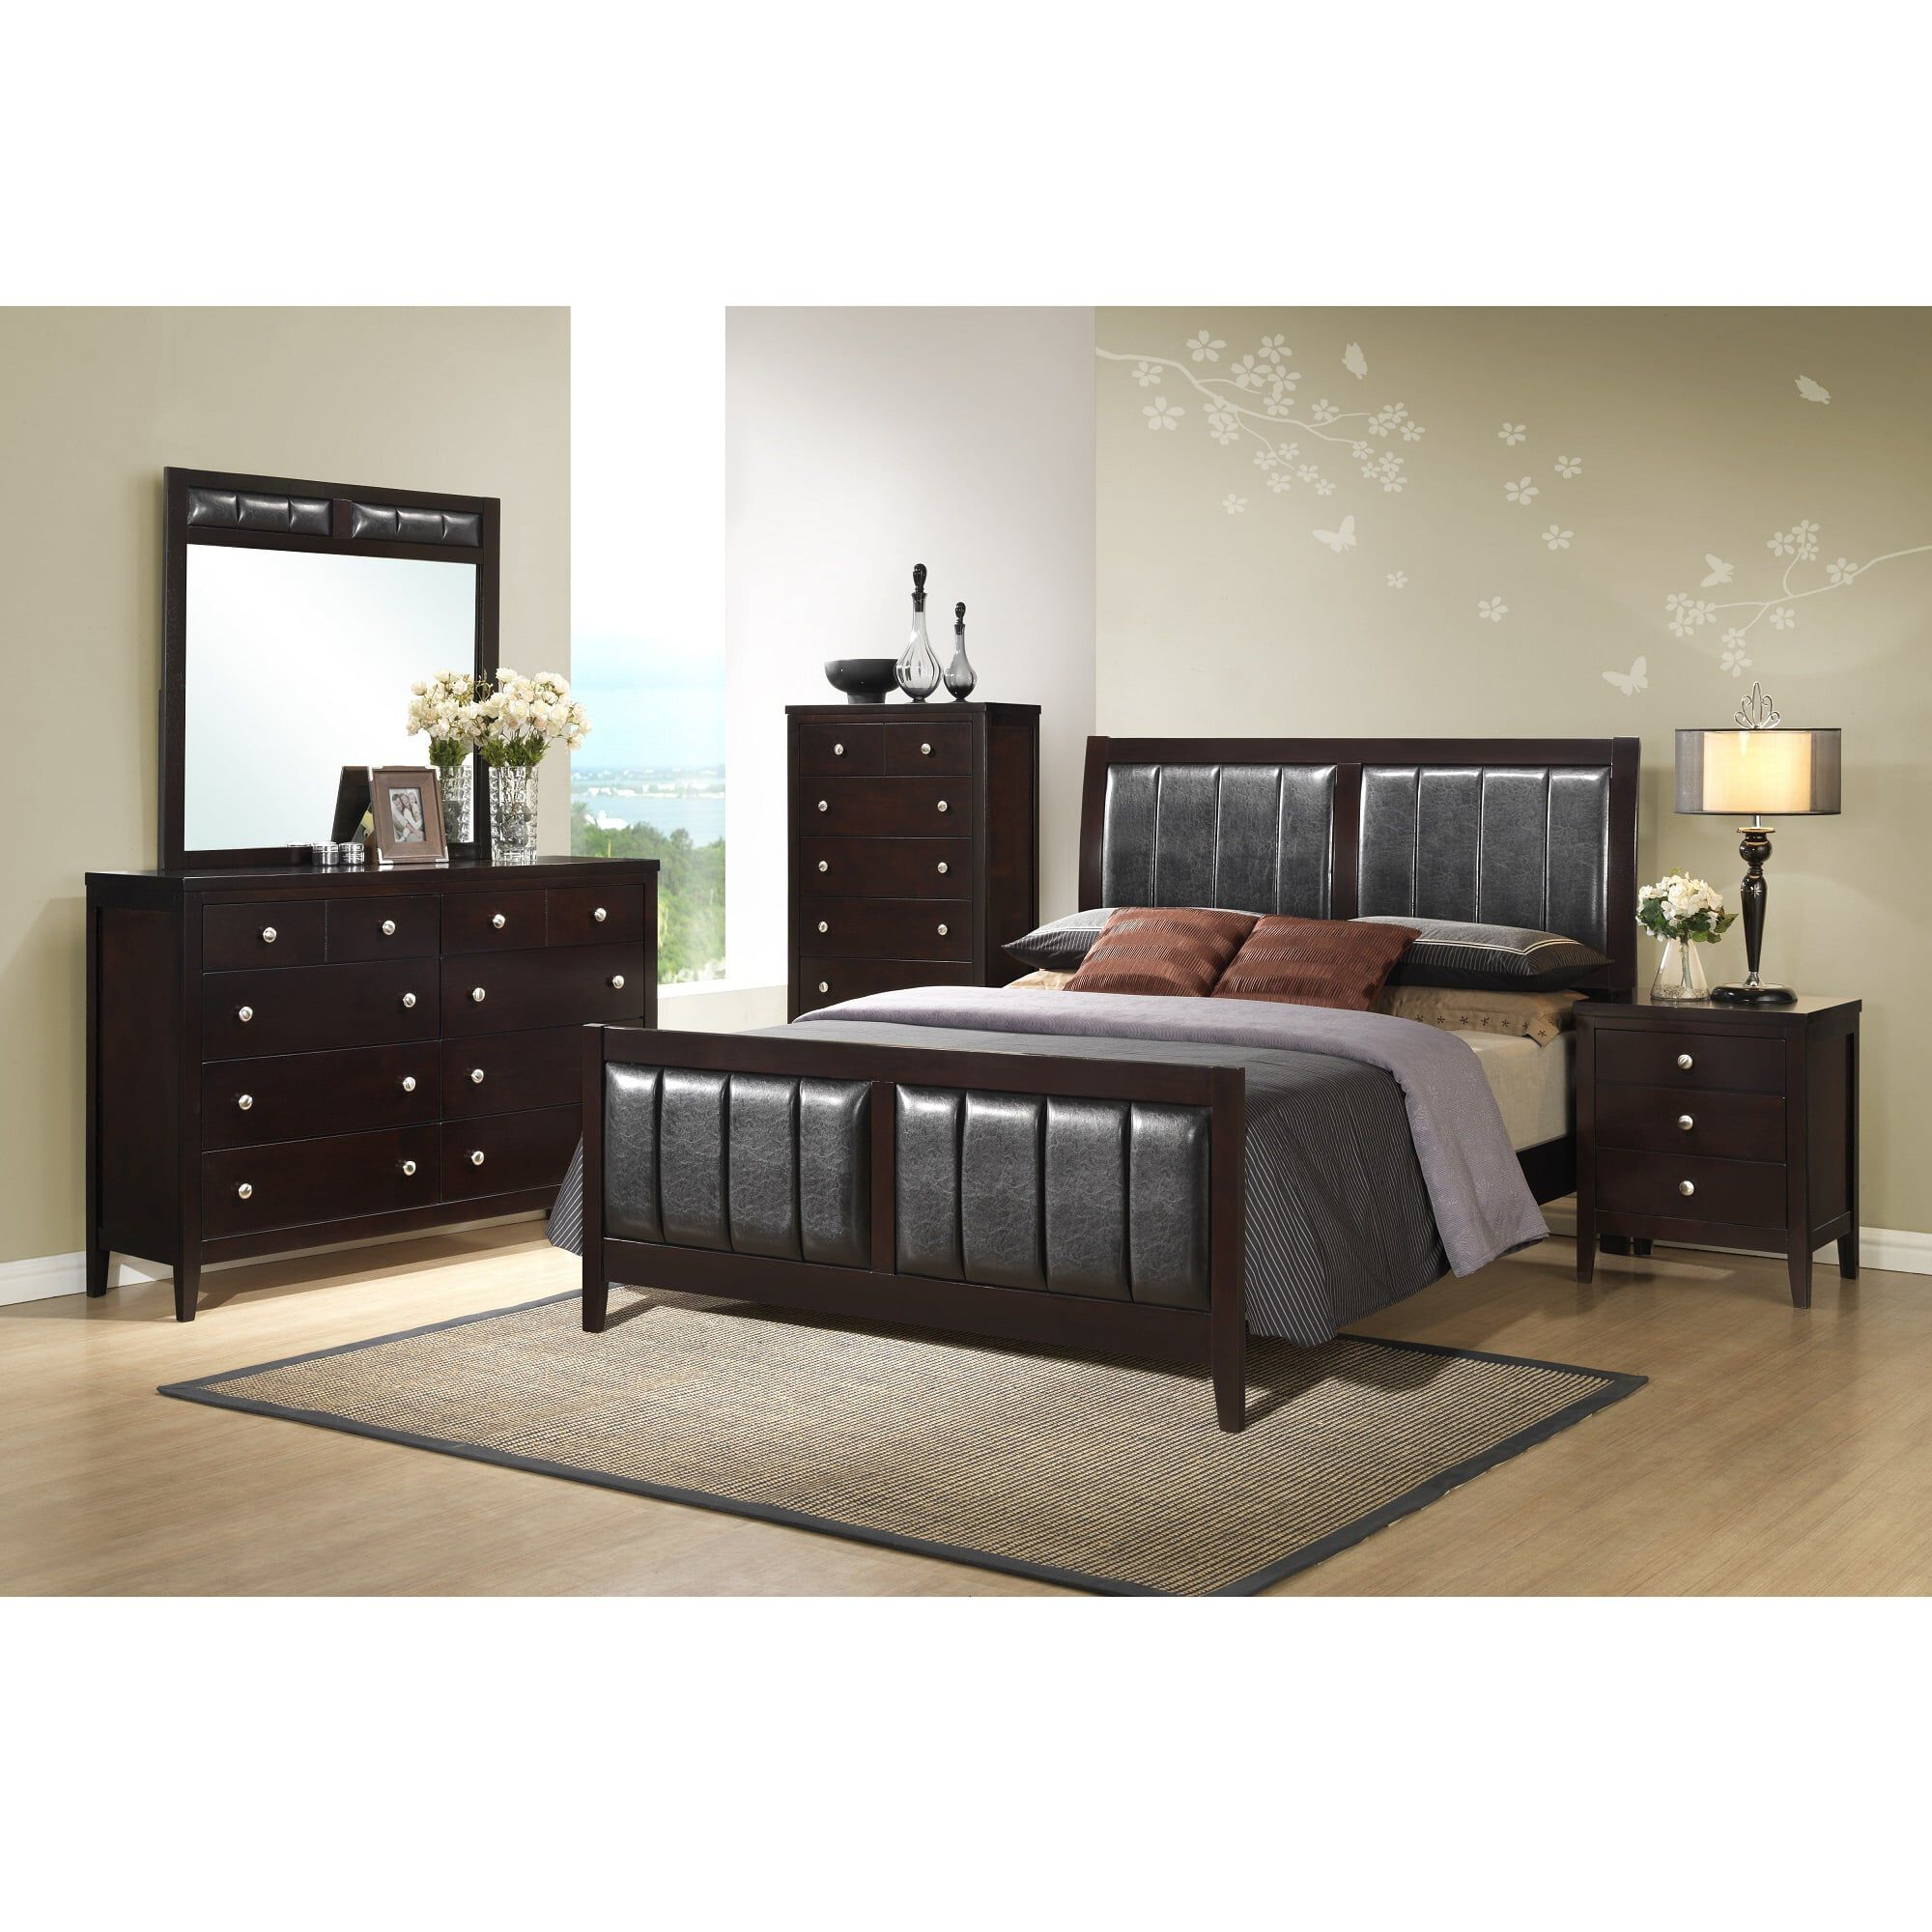 Aarons Rent To Own Bedroom Sets  online information